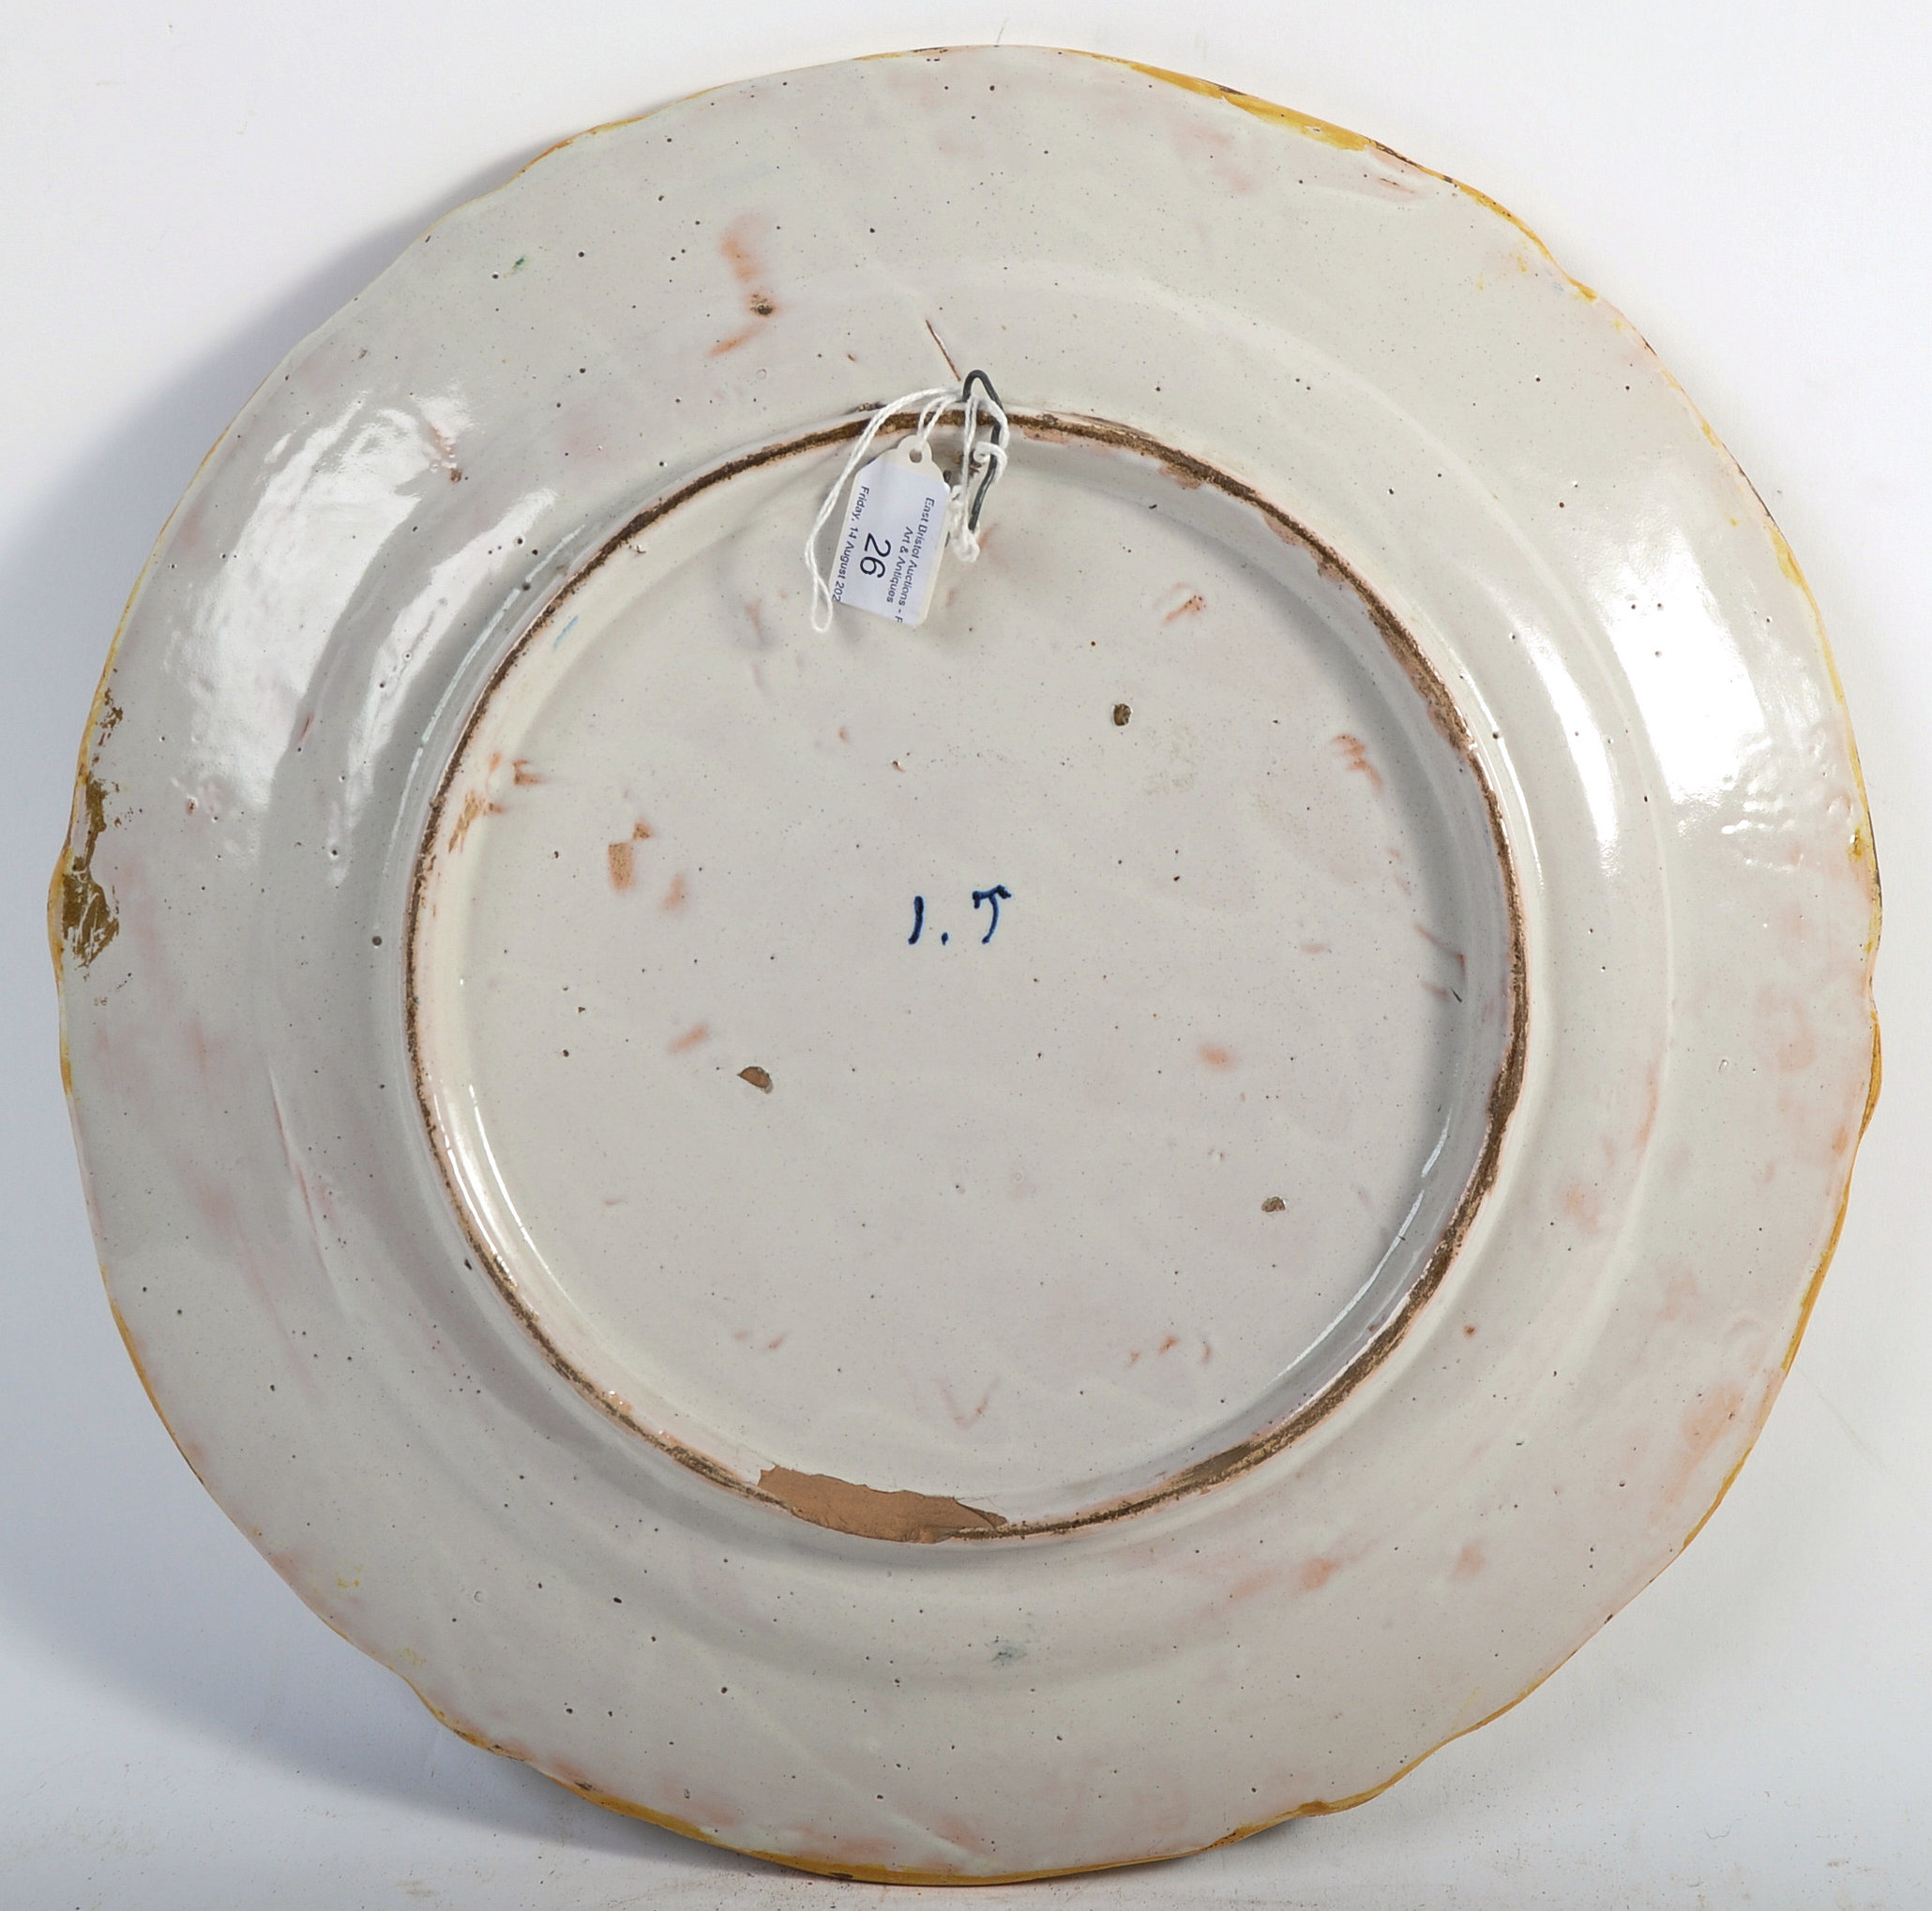 Lot 26 - 18TH CENTURY ITALIAN ANTIQUE POLYCHROME MAIOLICA WALL CHARGER